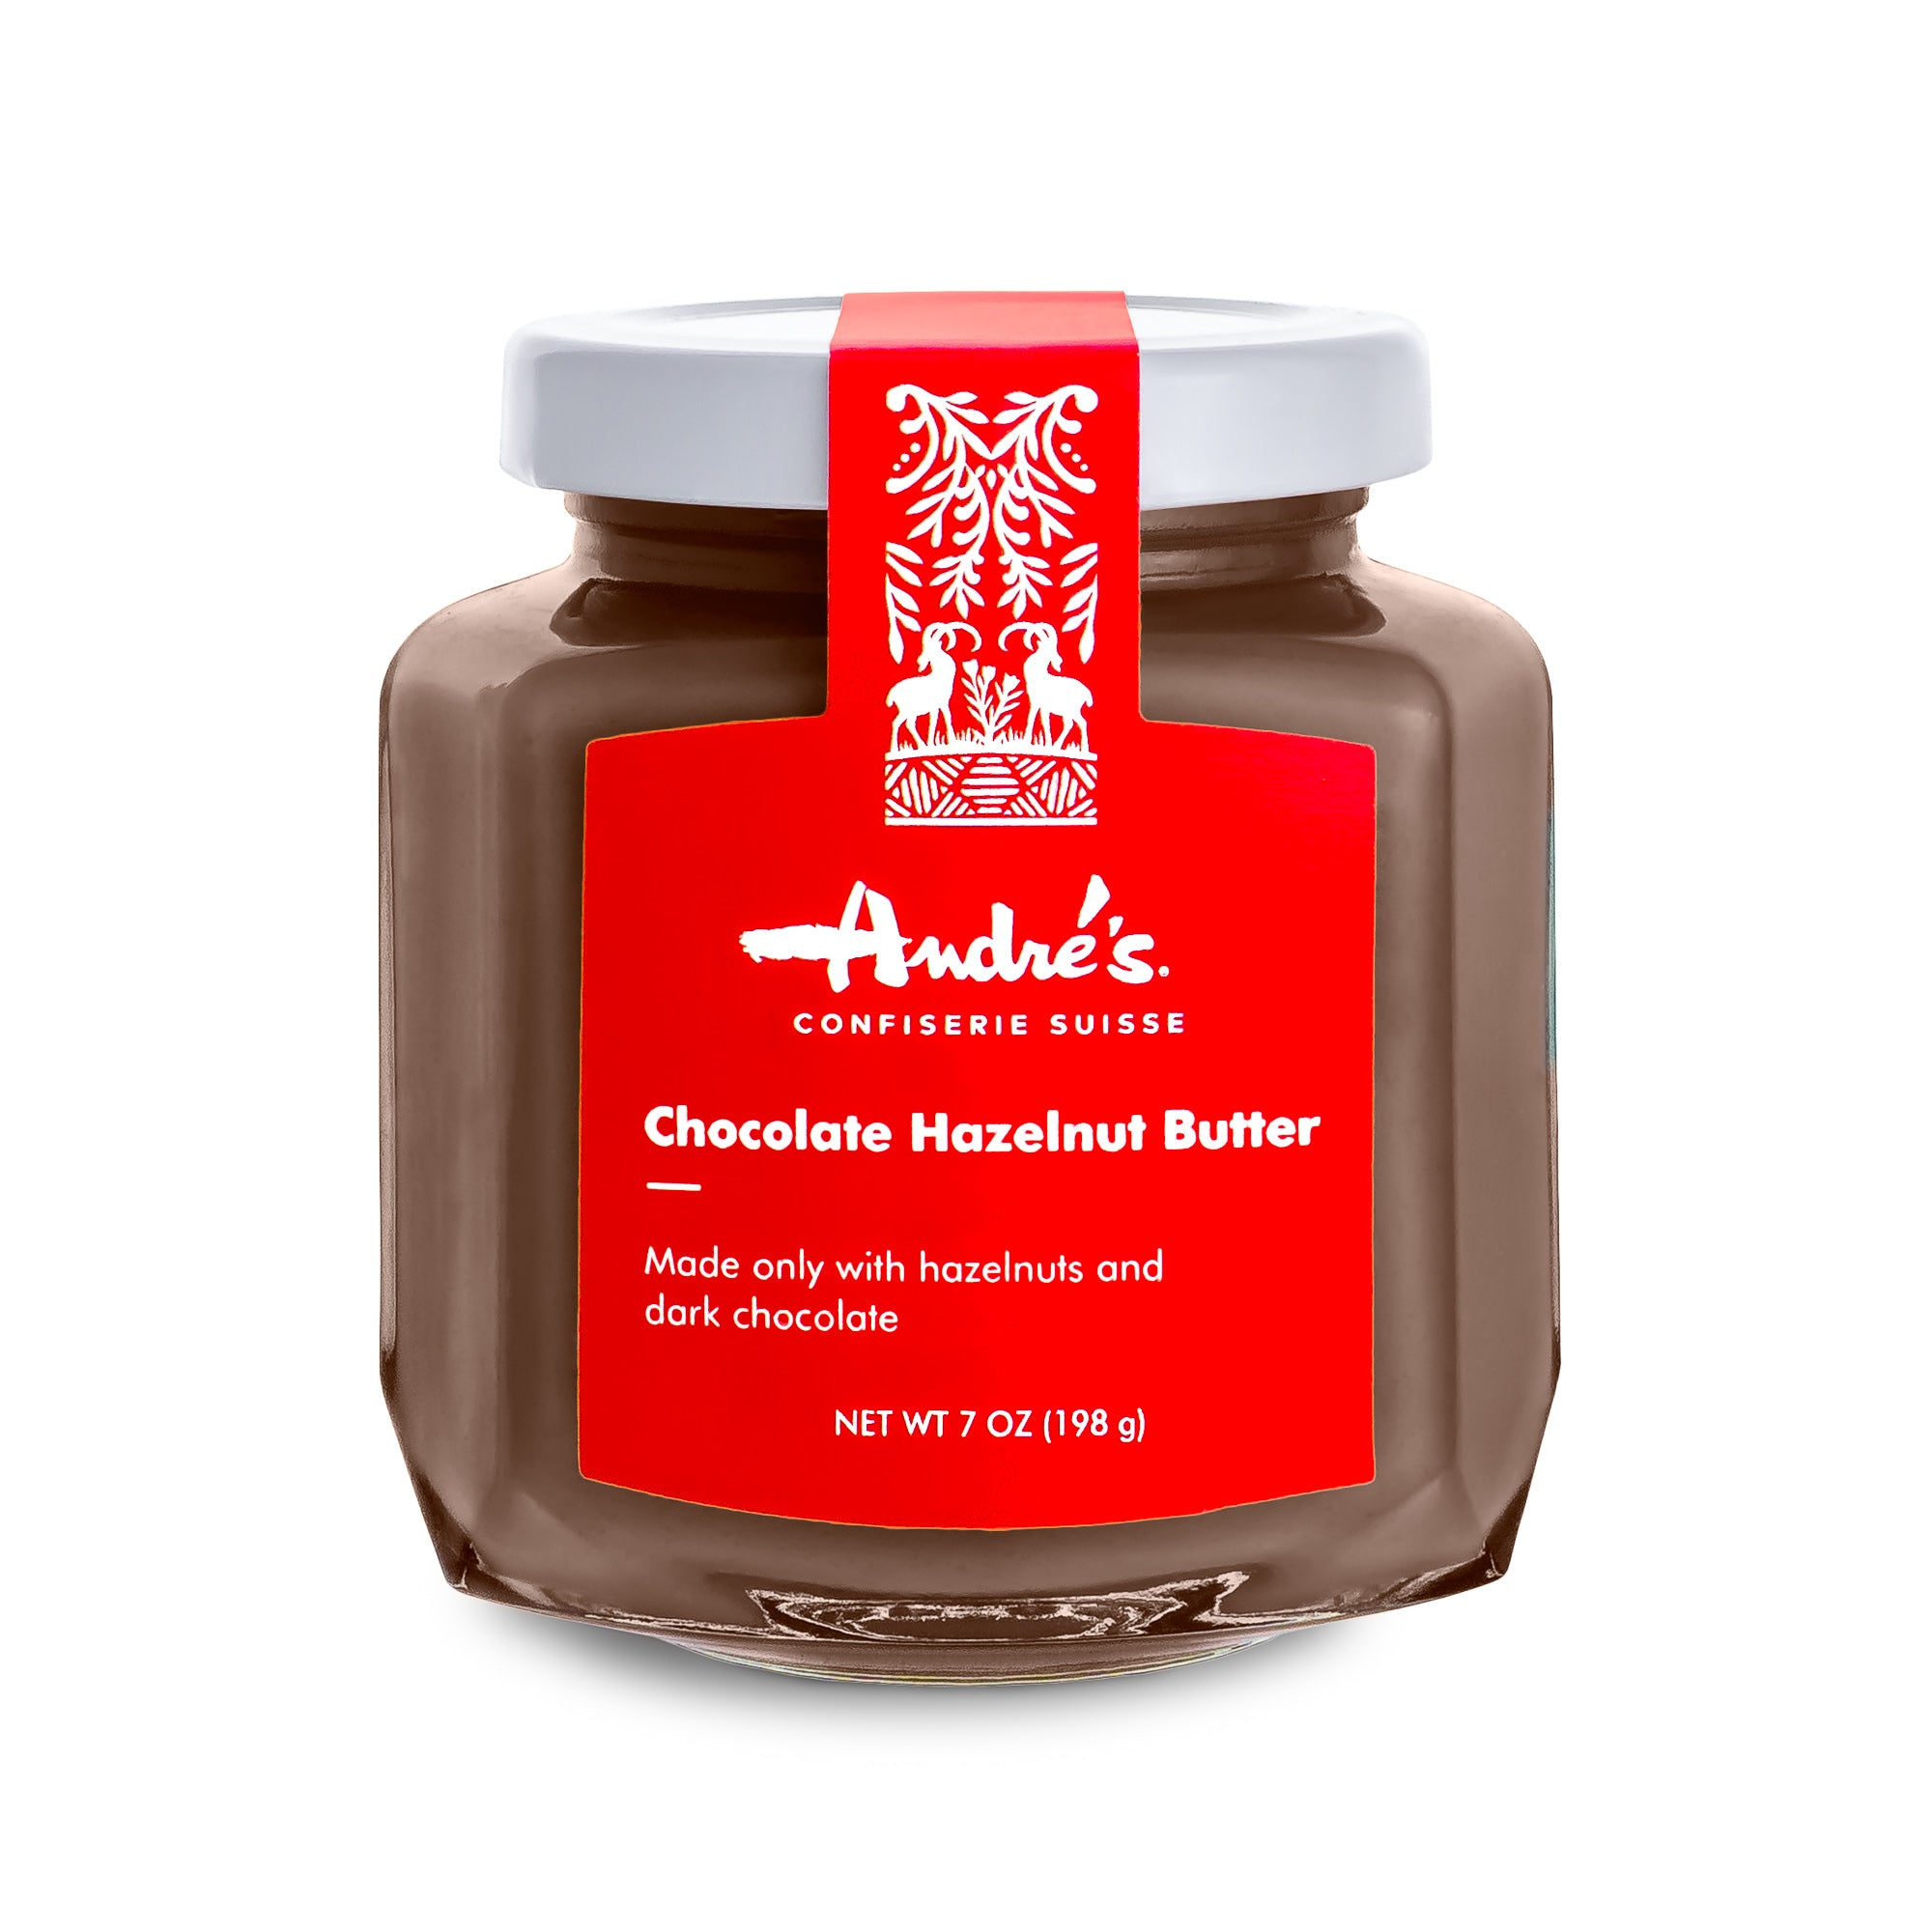 Chocolate Hazelnut Butter (2 sizes)